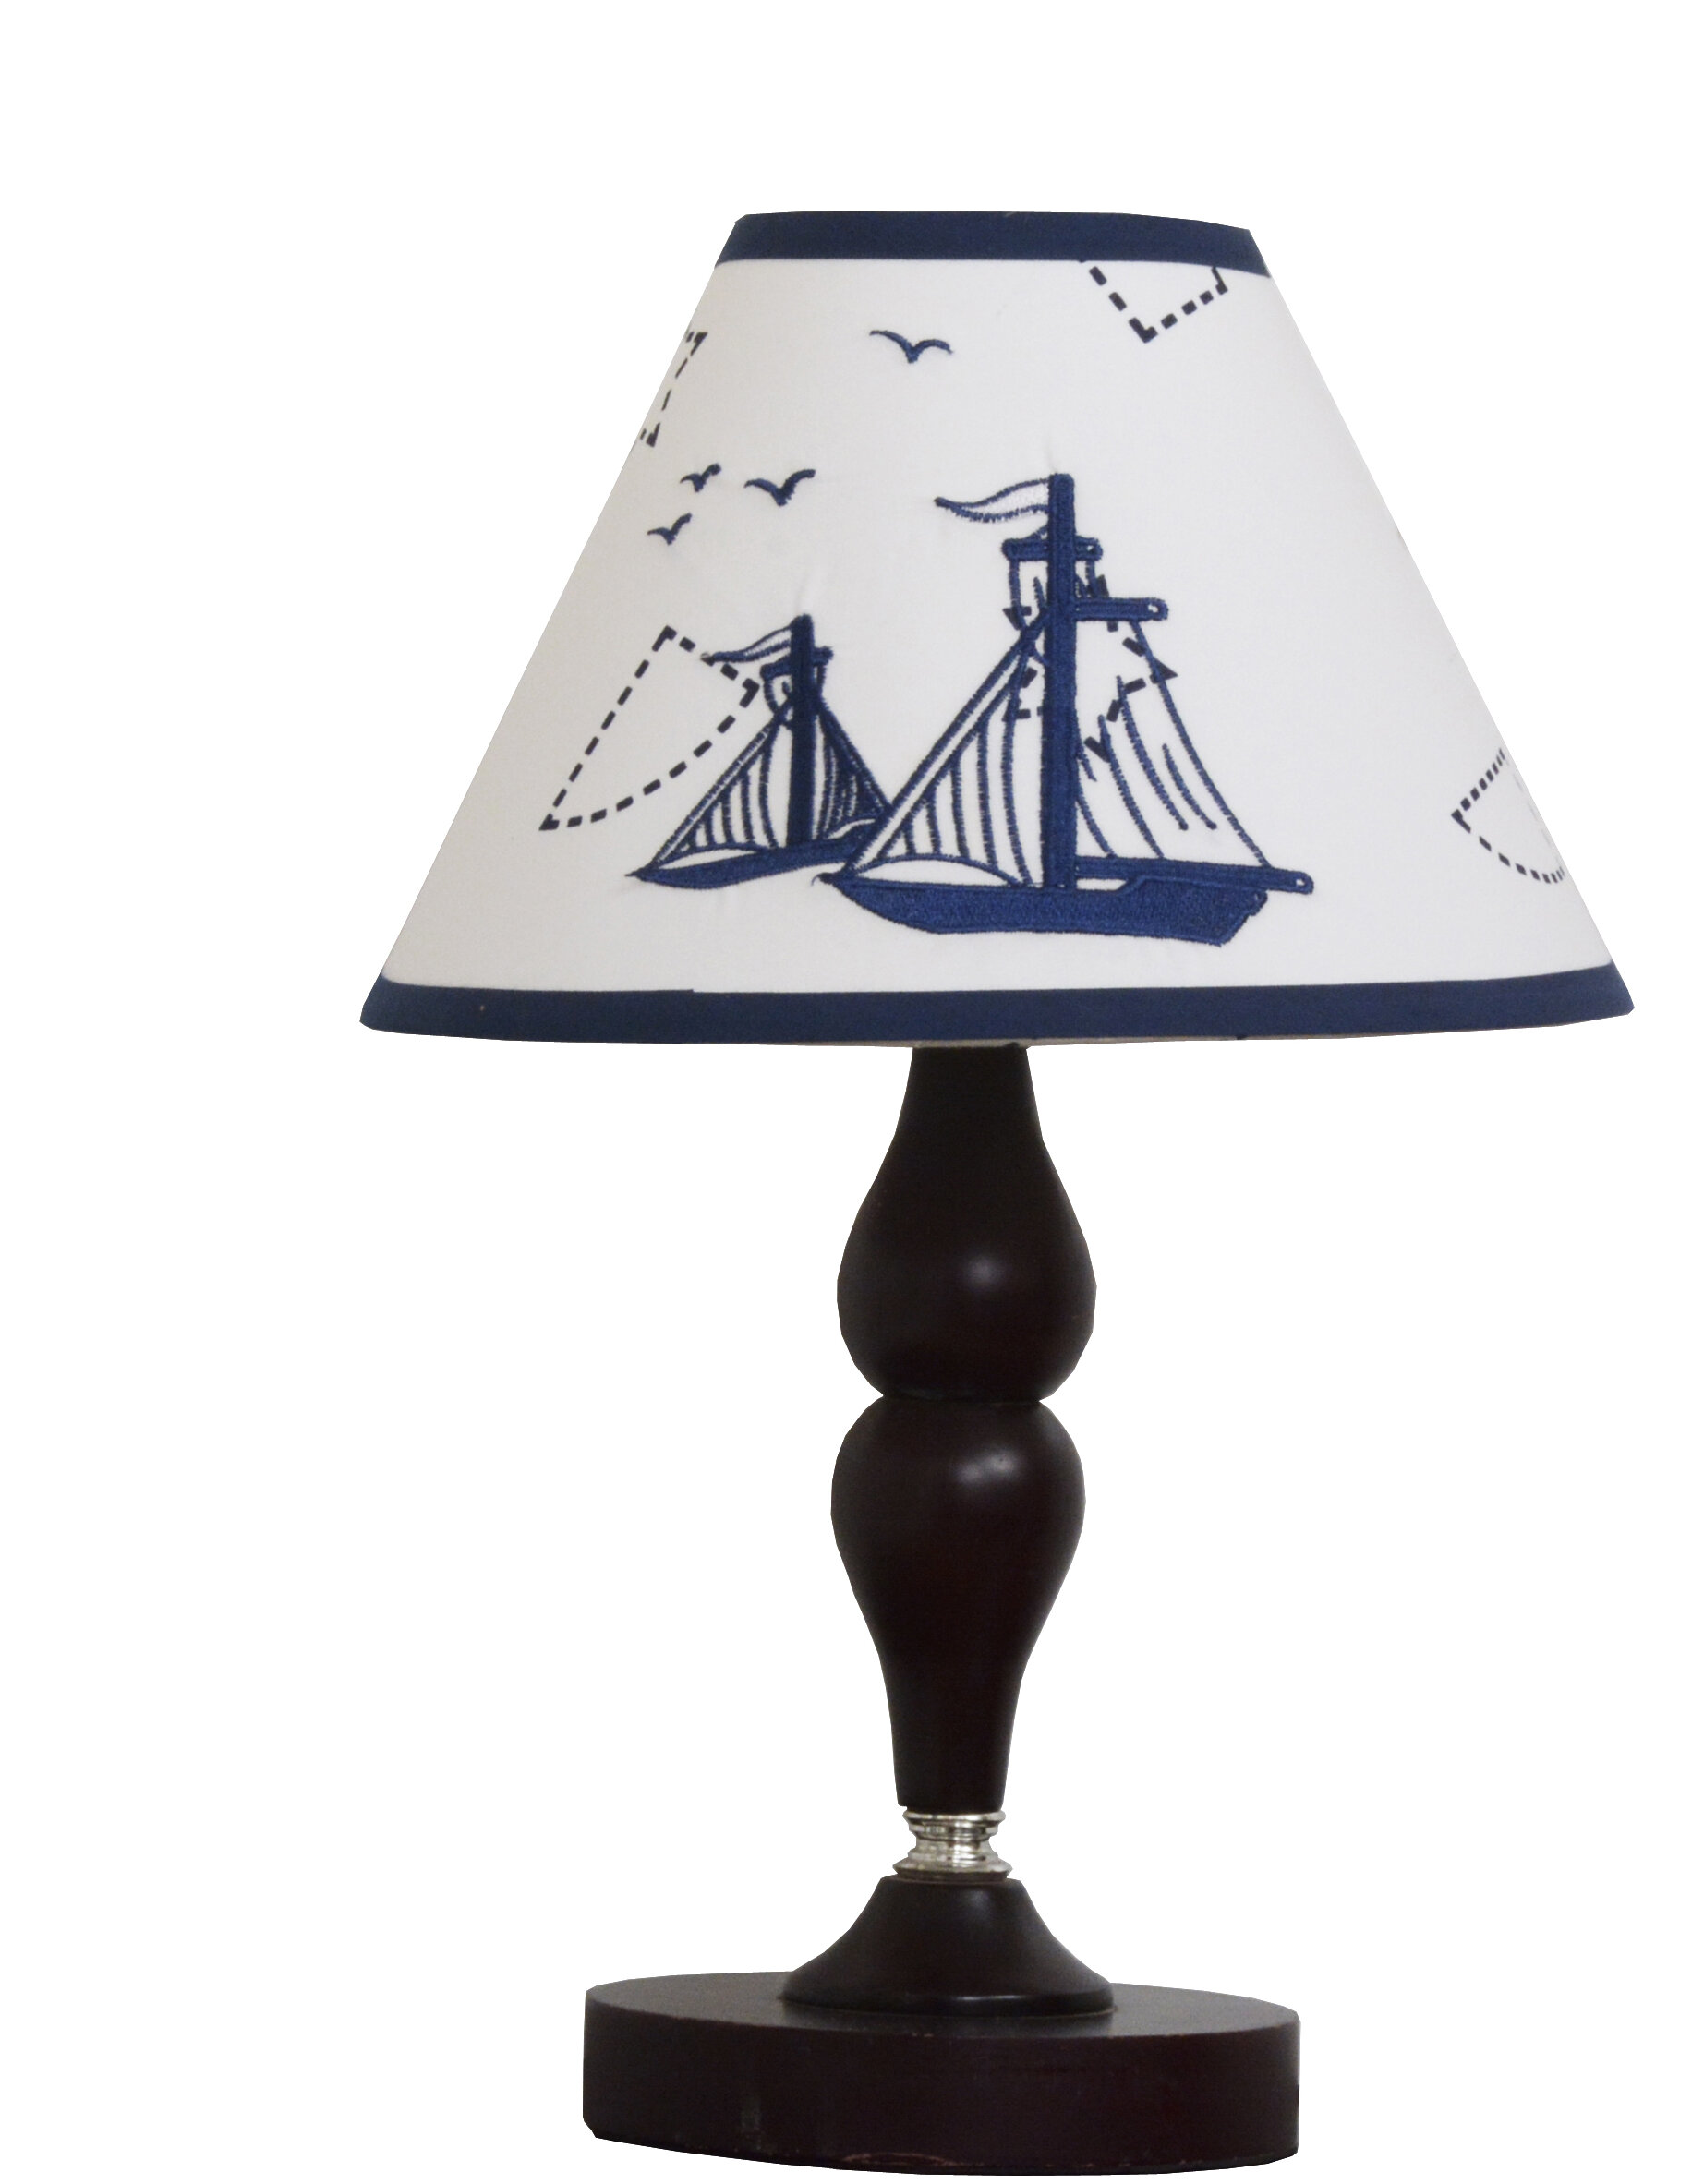 table side design light vintage of blue nice silk cheap torchiere ideas size inch silver uno lamp lamps grey antique fitter small pictures replacement standing shades diffuser shade glassware home for full glass globe floor victorian lampshades and